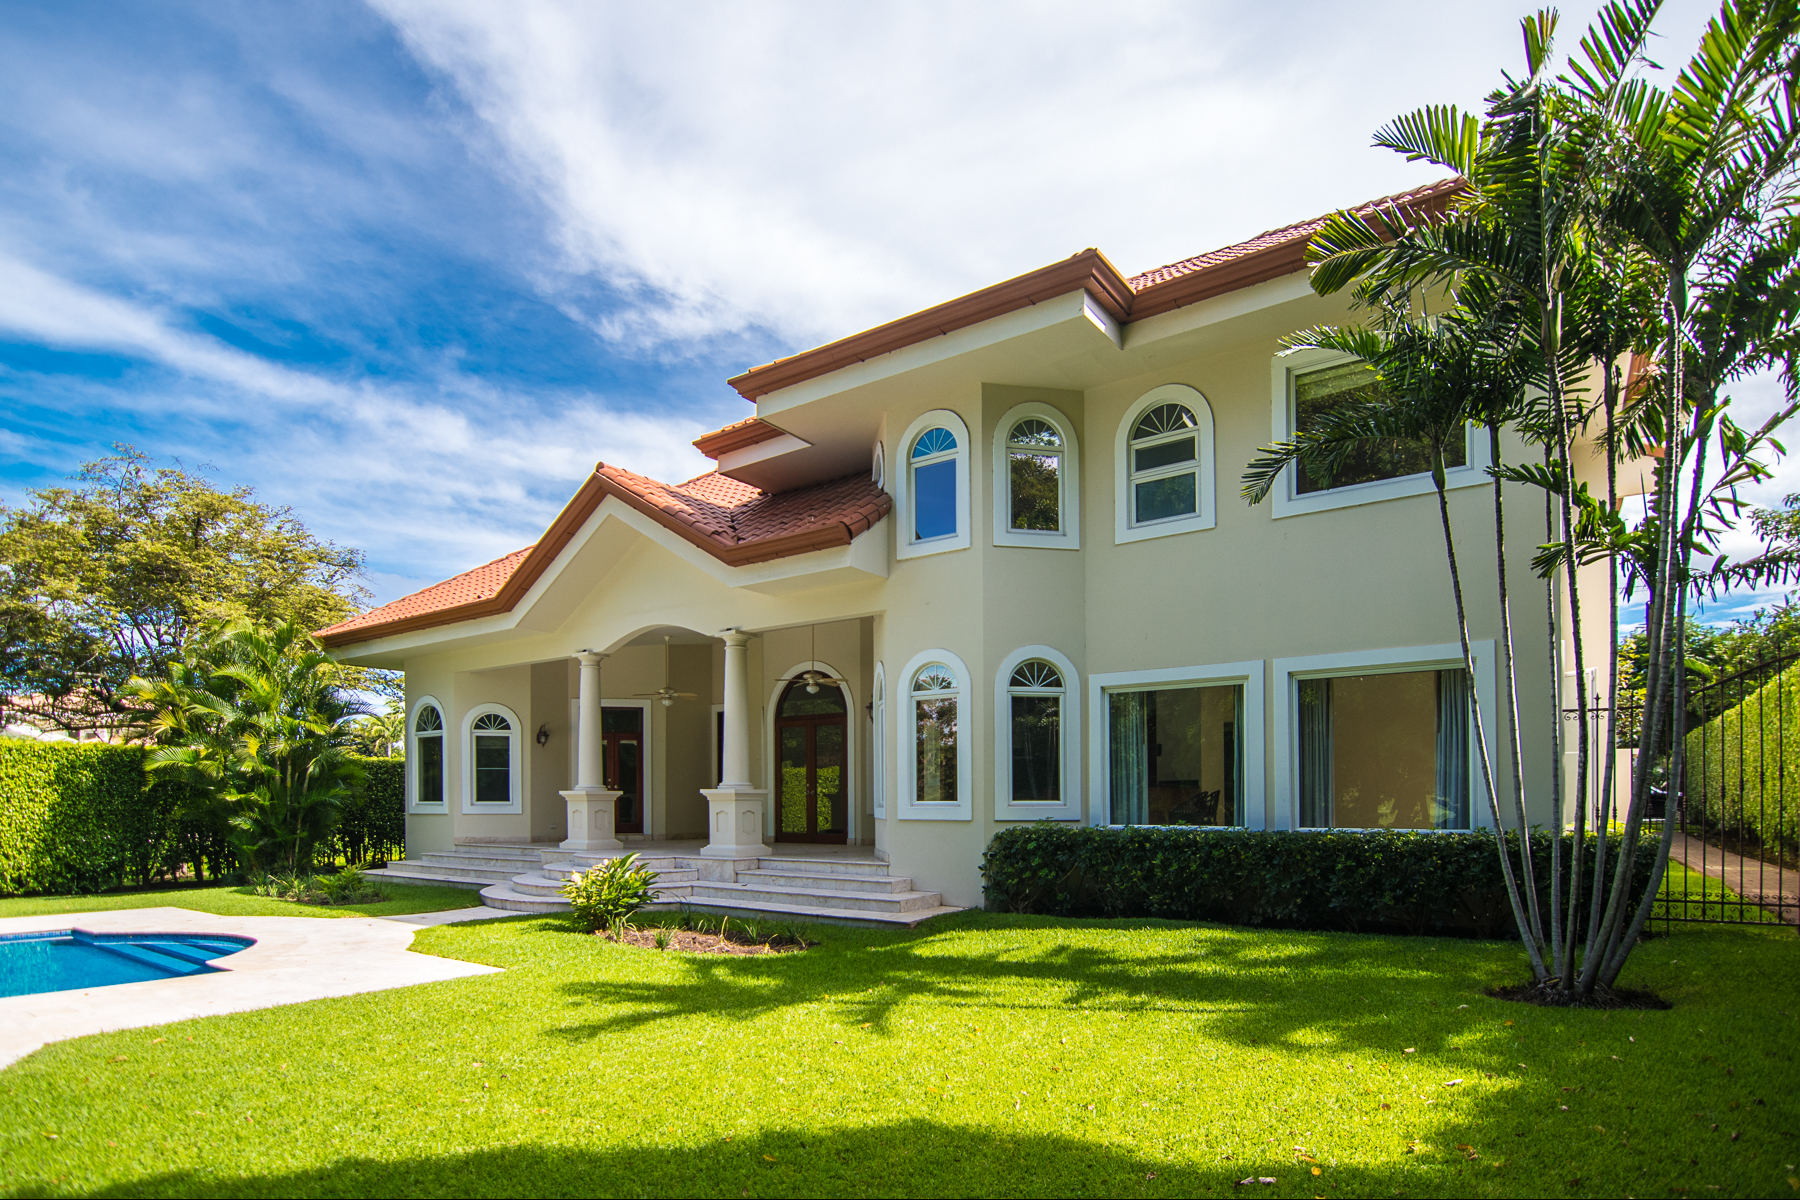 Single Family Homes for Sale at Mediterranean Golf Estate, Santa Ana Santa Ana, San Jose Costa Rica